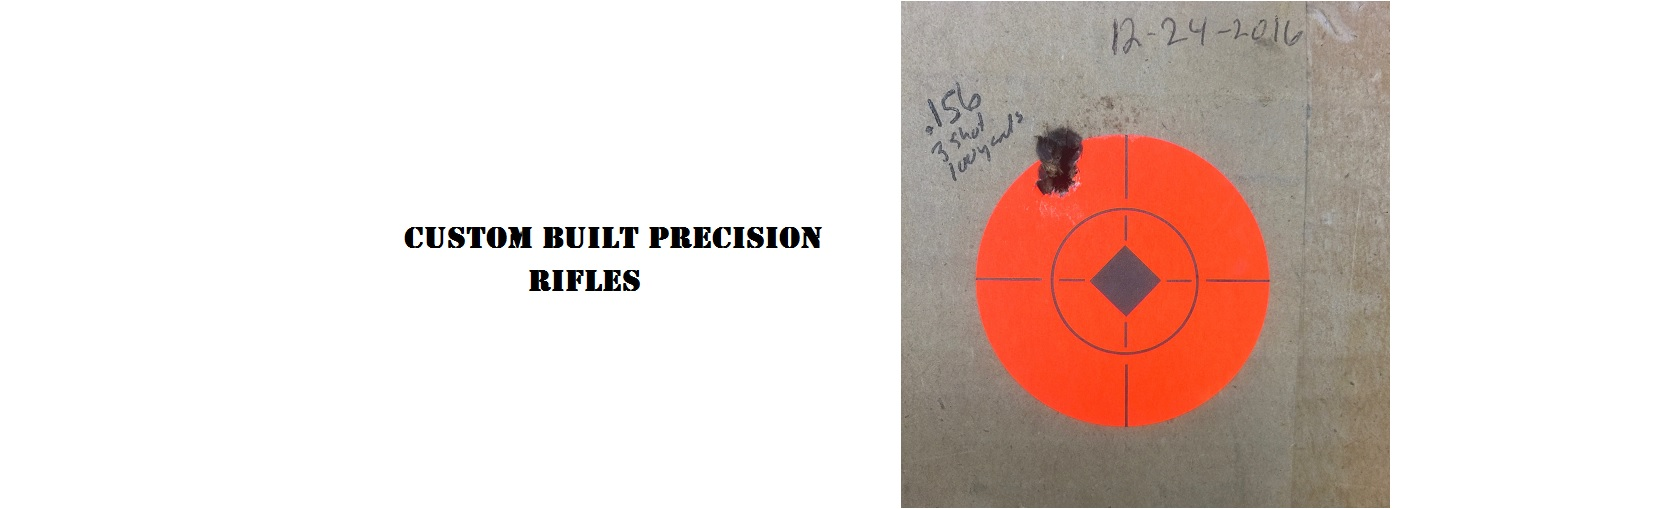 Precision Rifle Series rifles